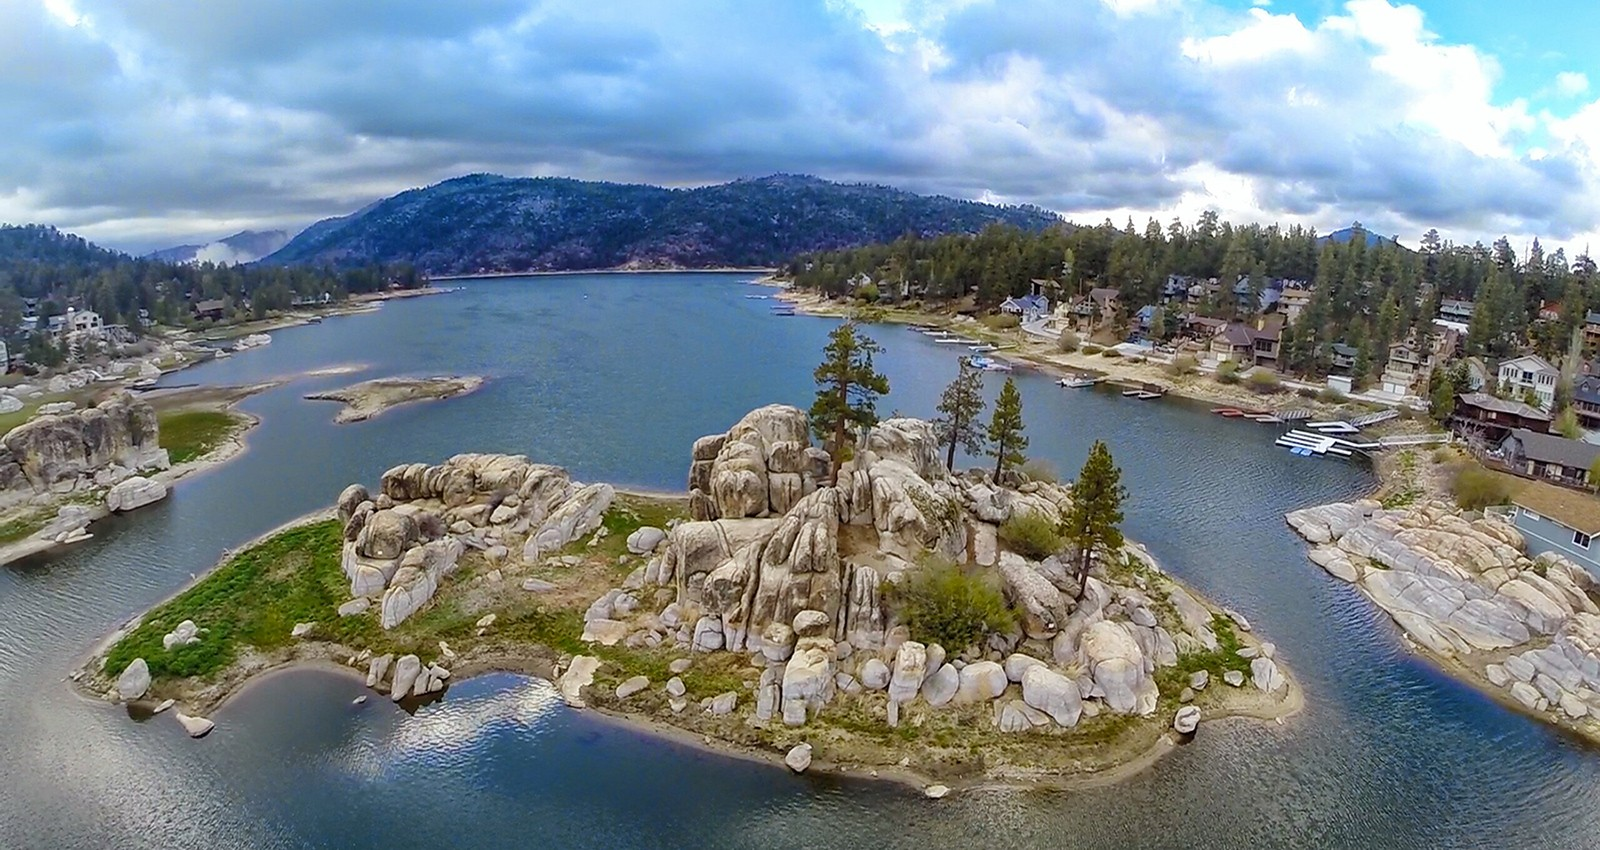 Things to do in Big Bear Lake